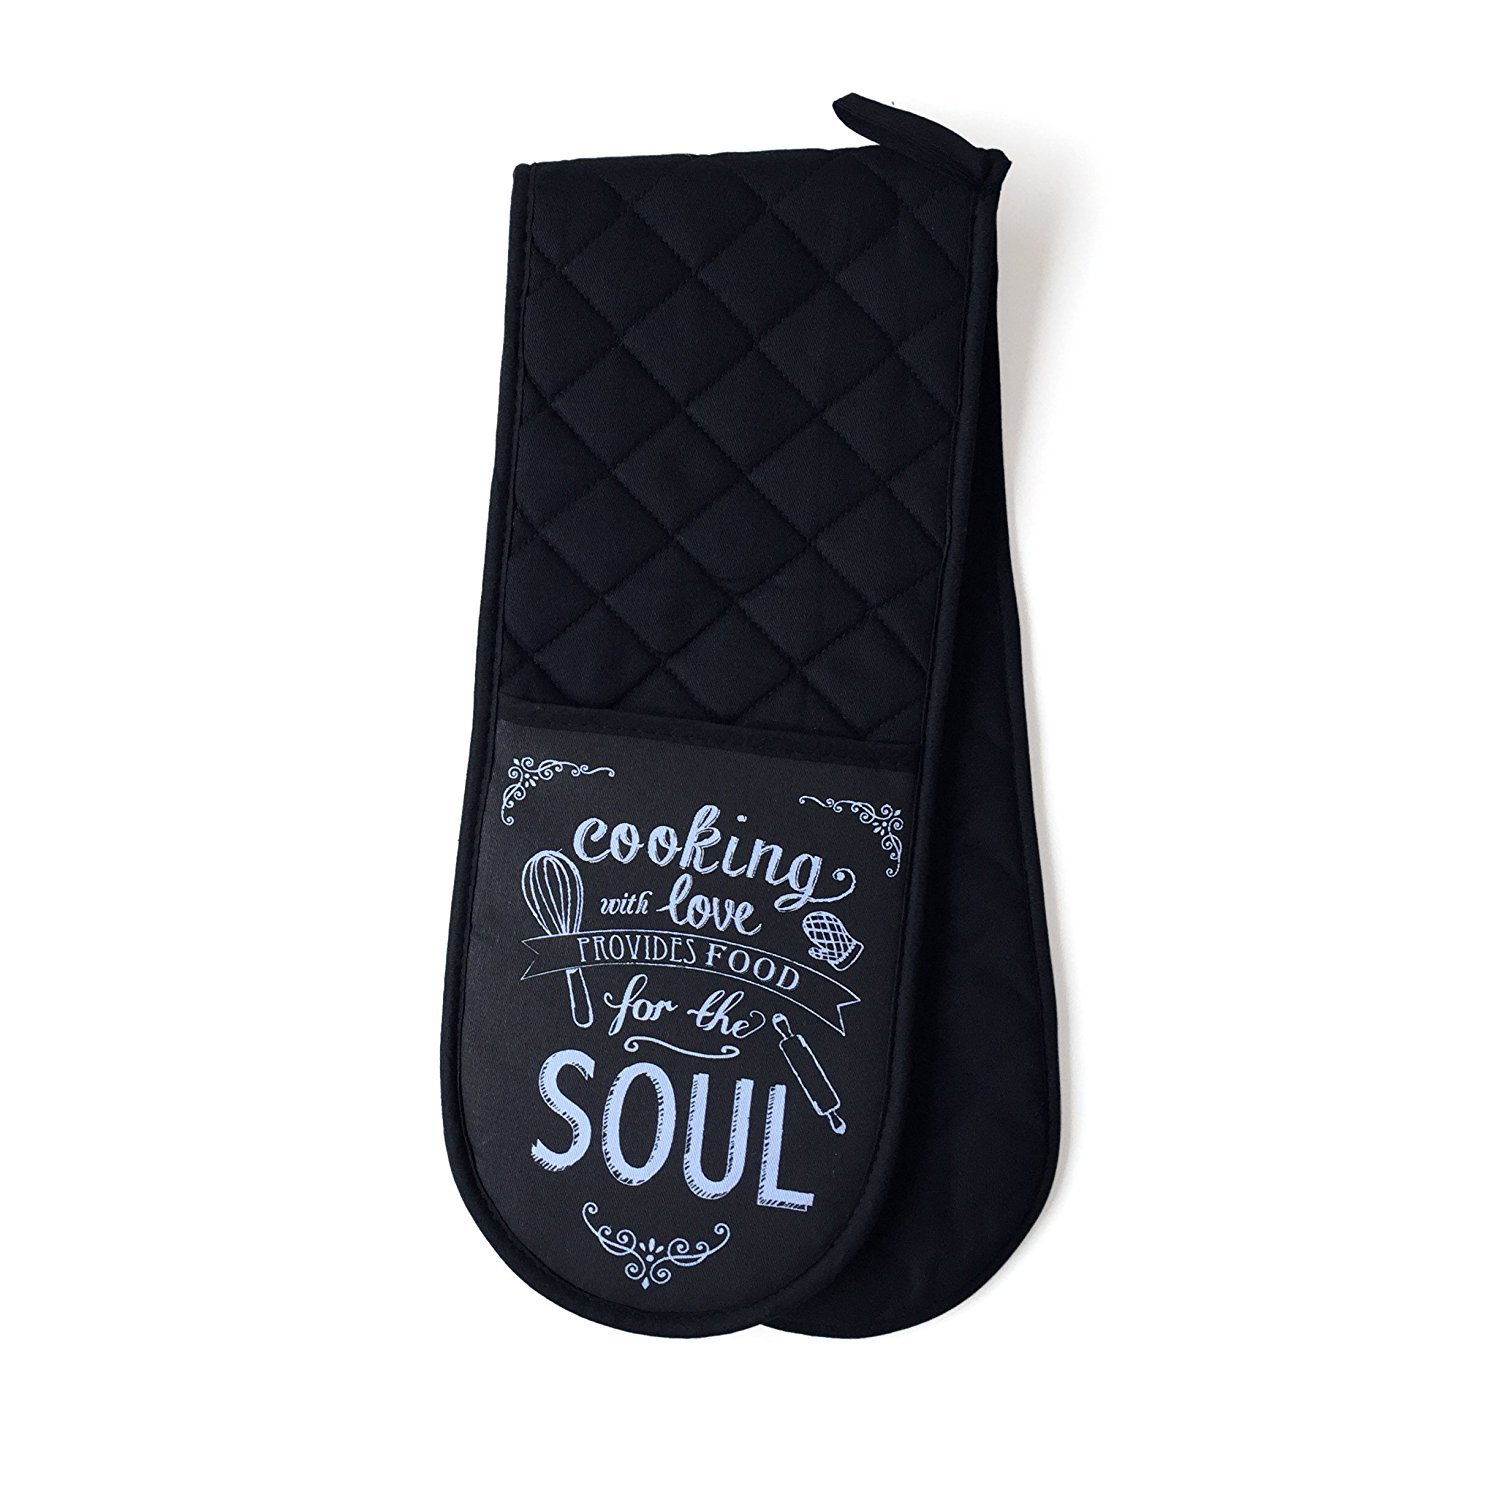 Vintage Double Oven Glove Cooking With Love Provides Food for the Soul